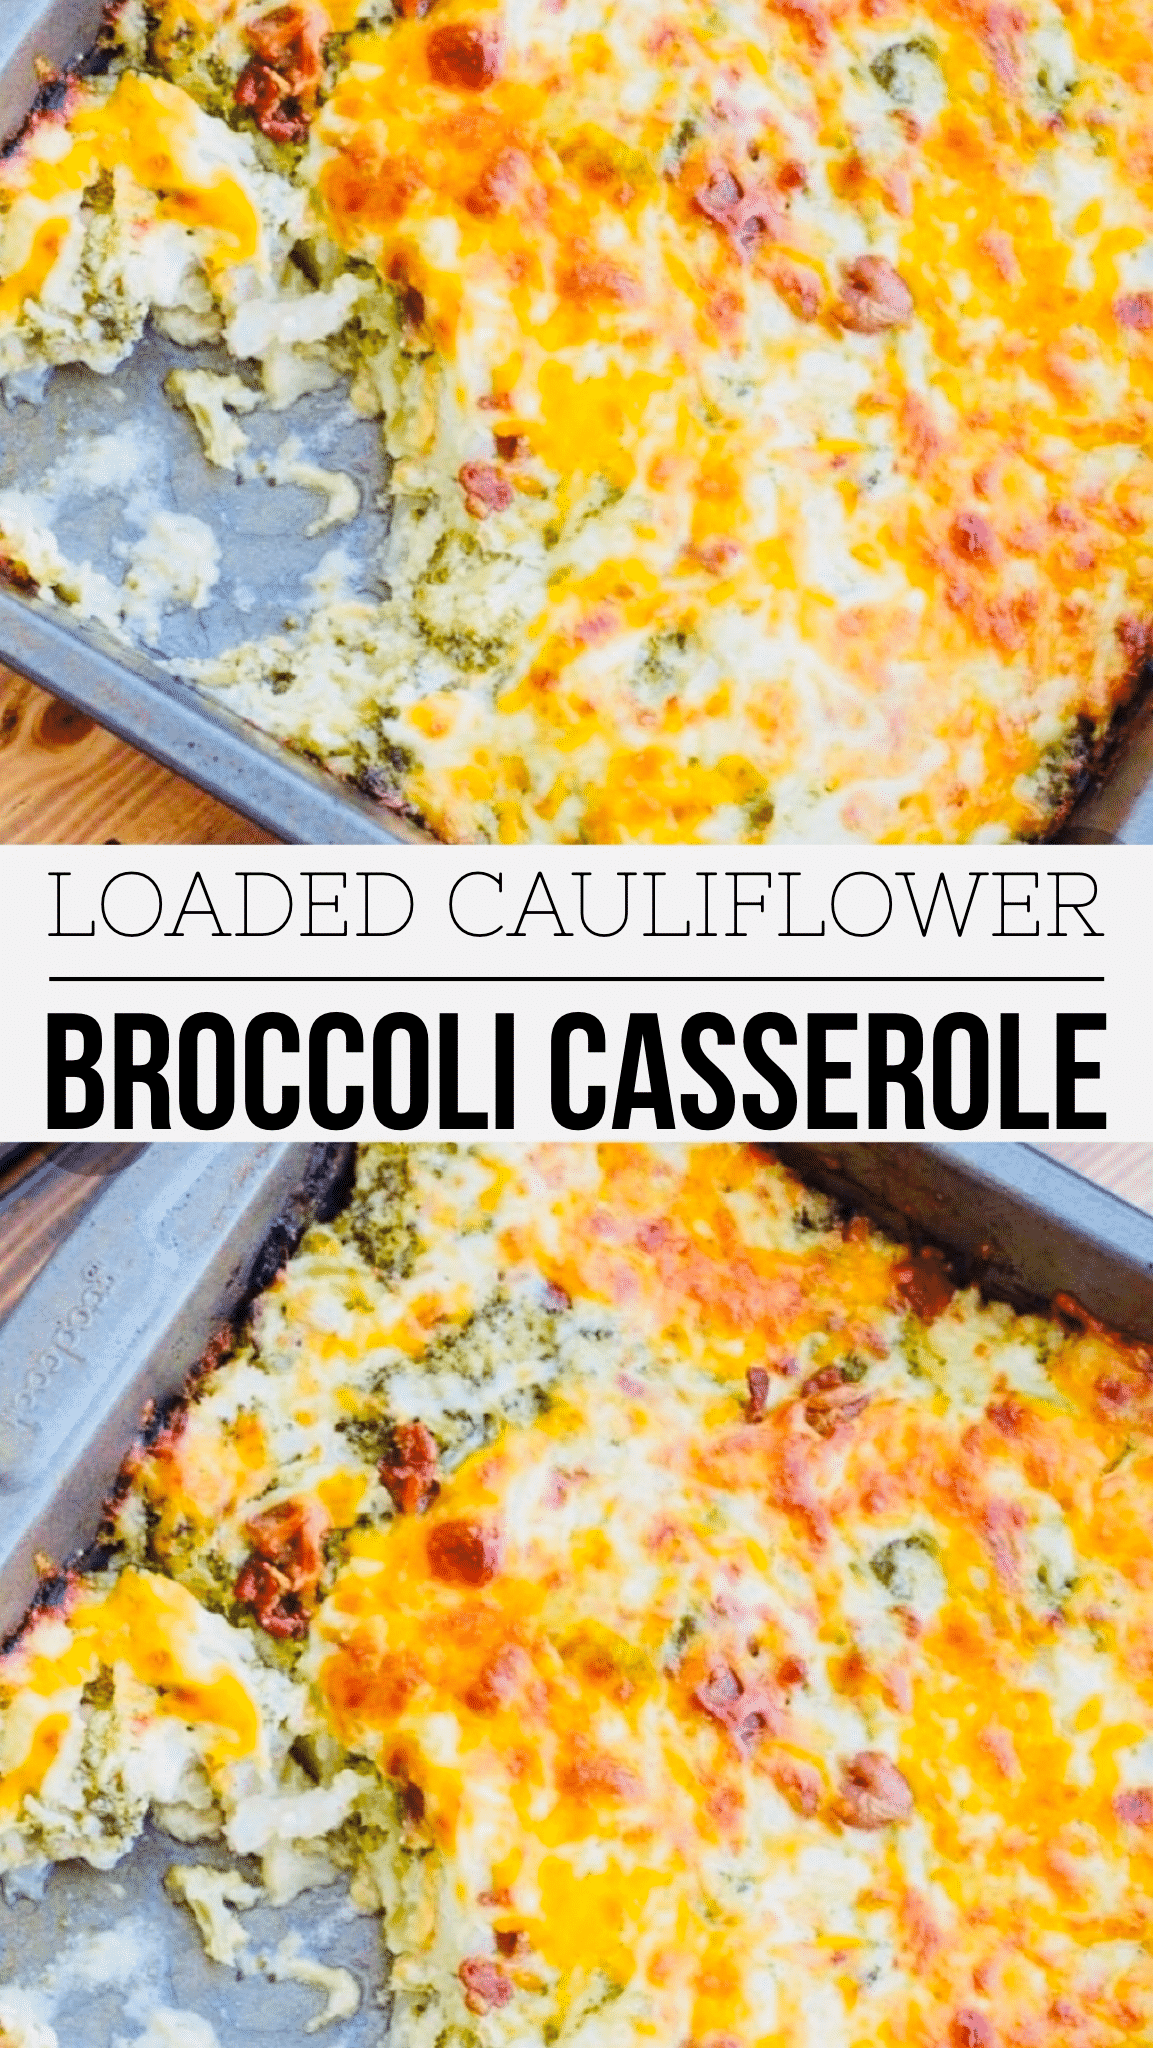 Loaded Cauliflower Broccoli Casserole | My Best Home Life #loadedcauliflowerbake